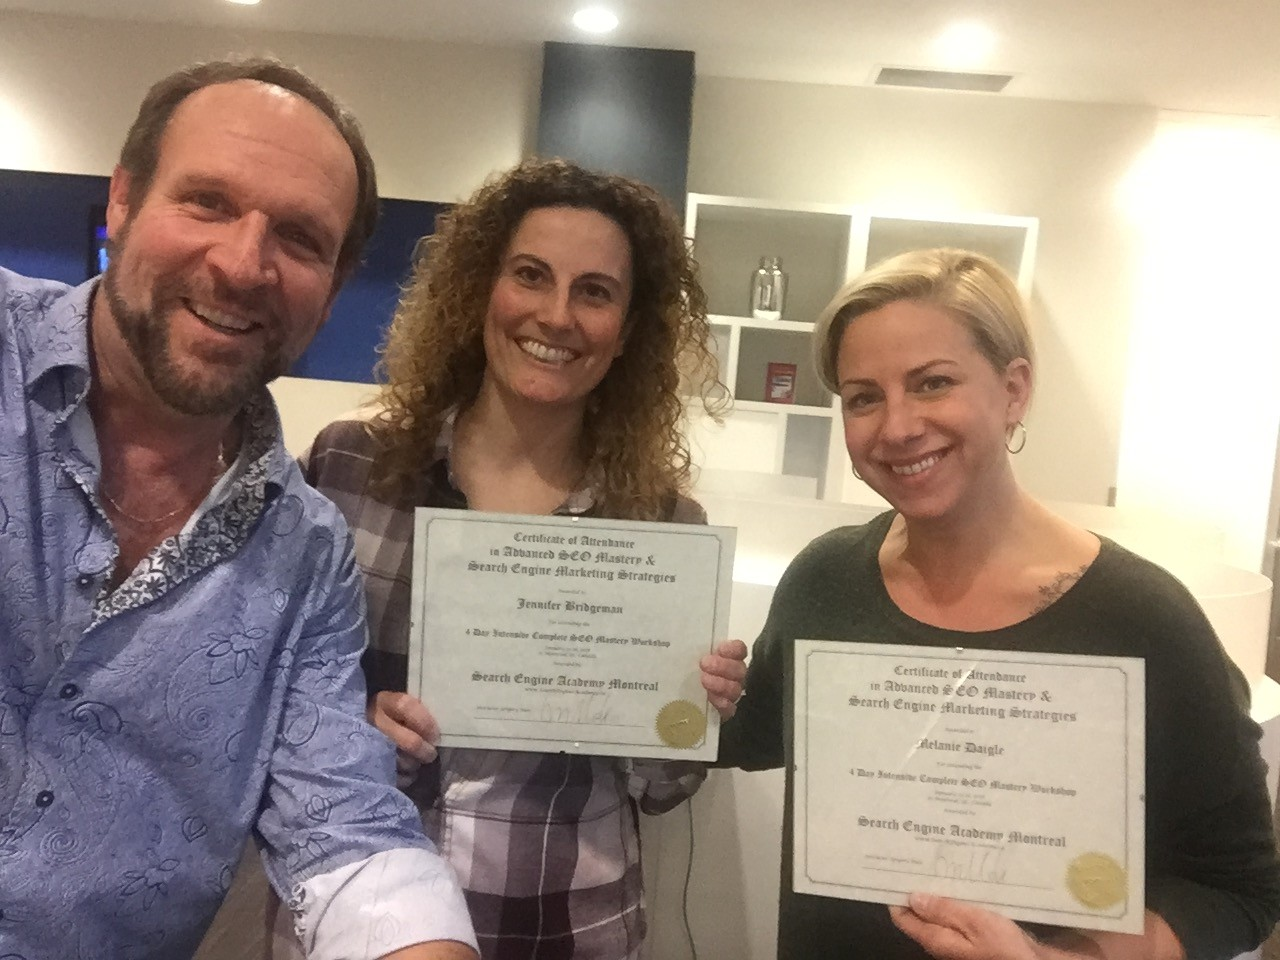 selfie with smiling myself, melanie & jennifer with their certificates